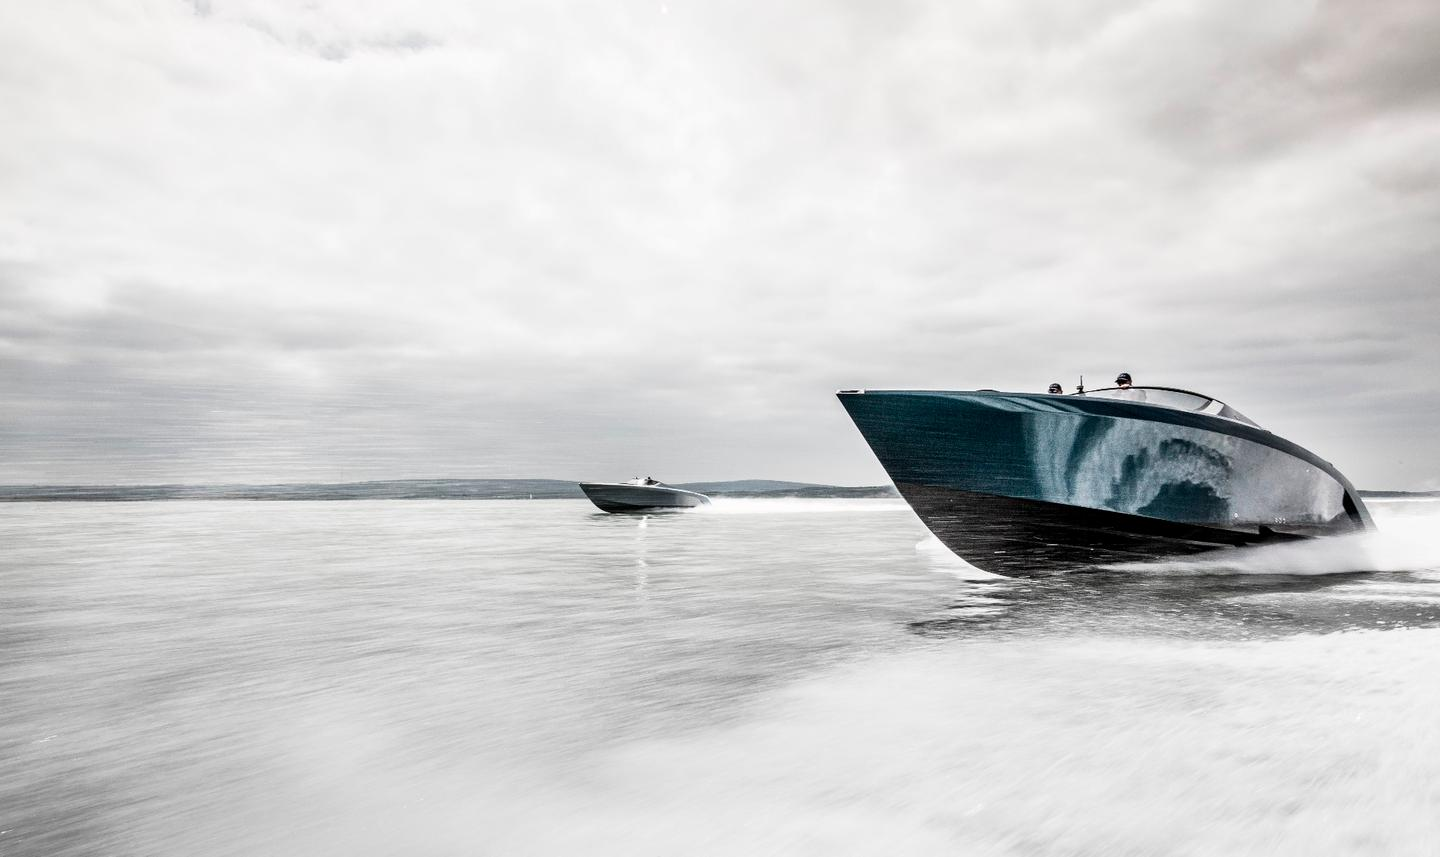 The new AM37 yacht has arrived in its first owner's hands